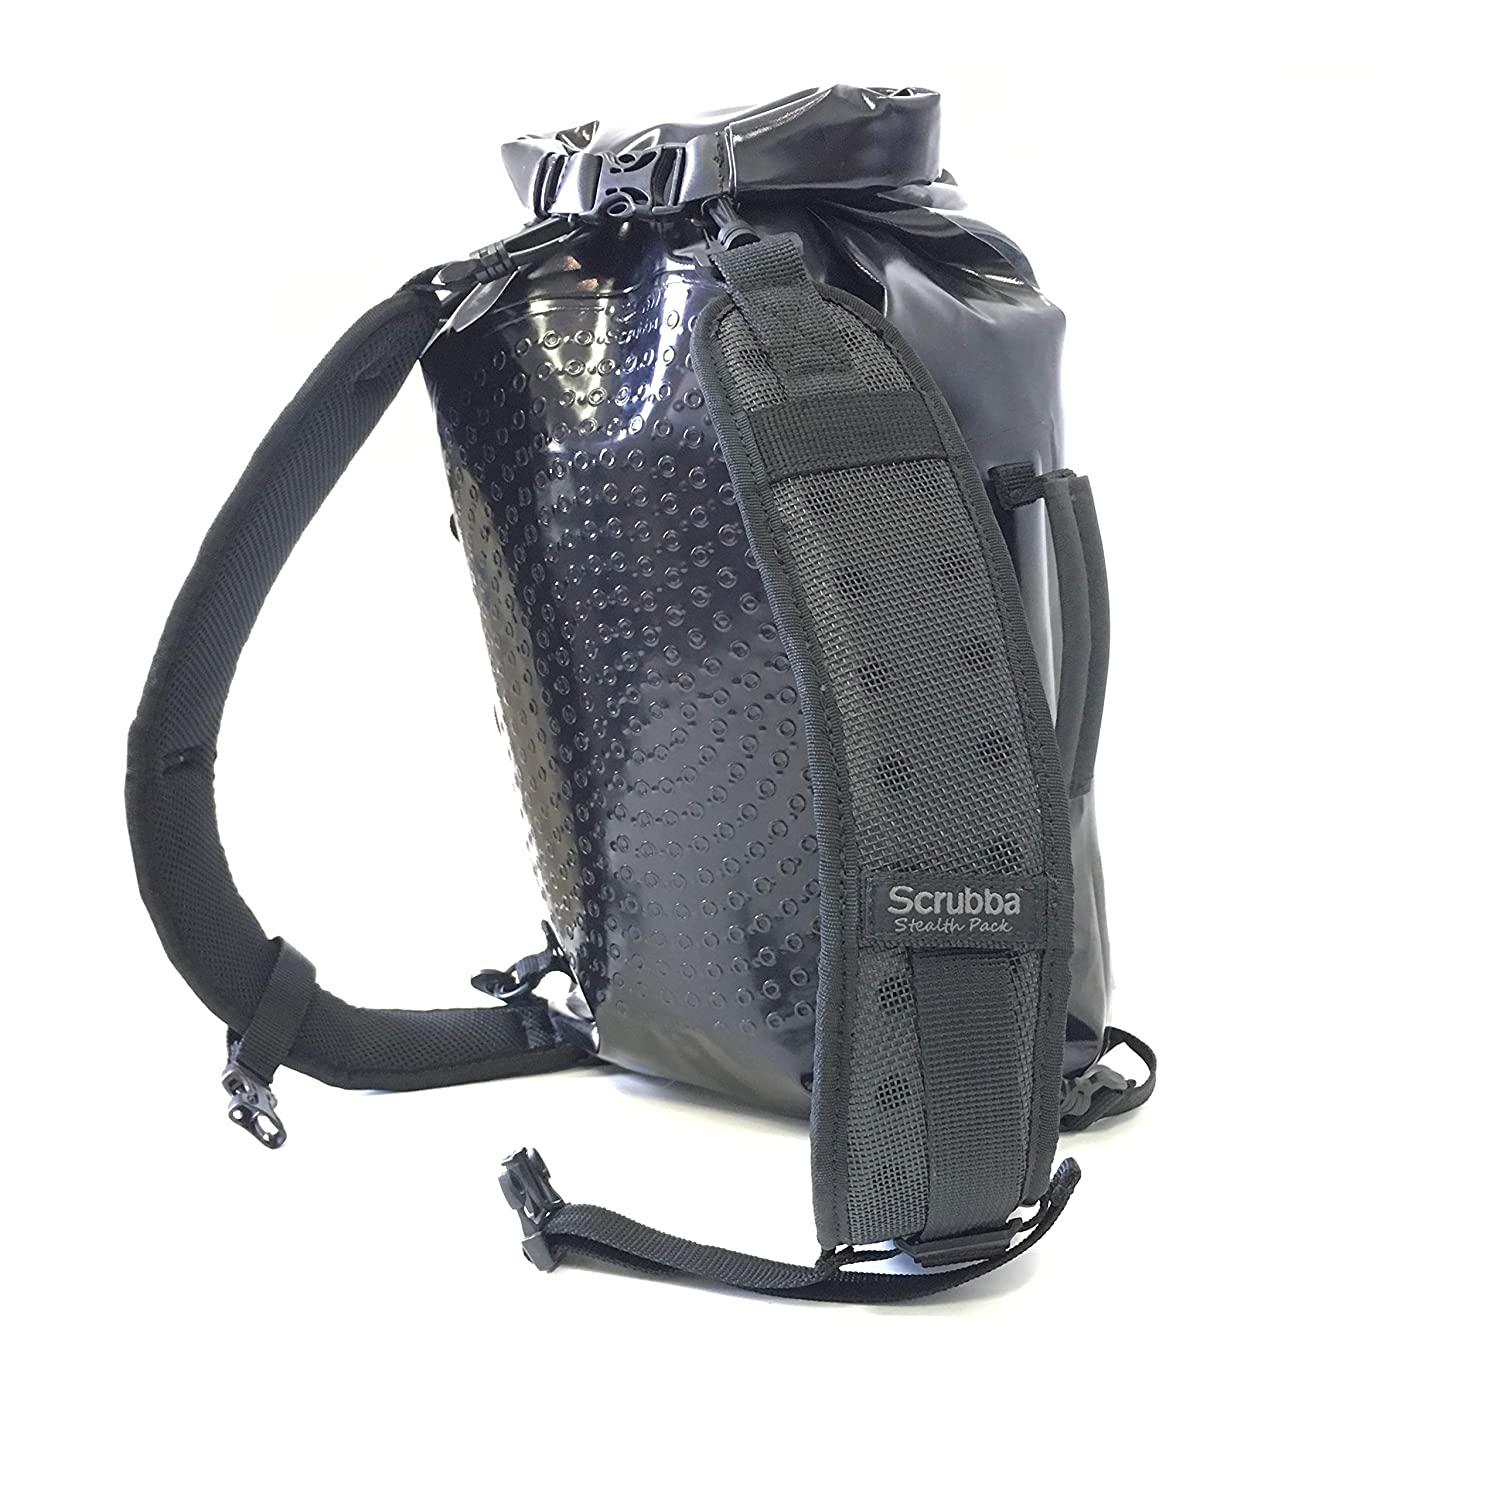 The Scrubba Stealth Pack - Multifunctional Backpack travel product recommended by Sarah Home on Lifney.